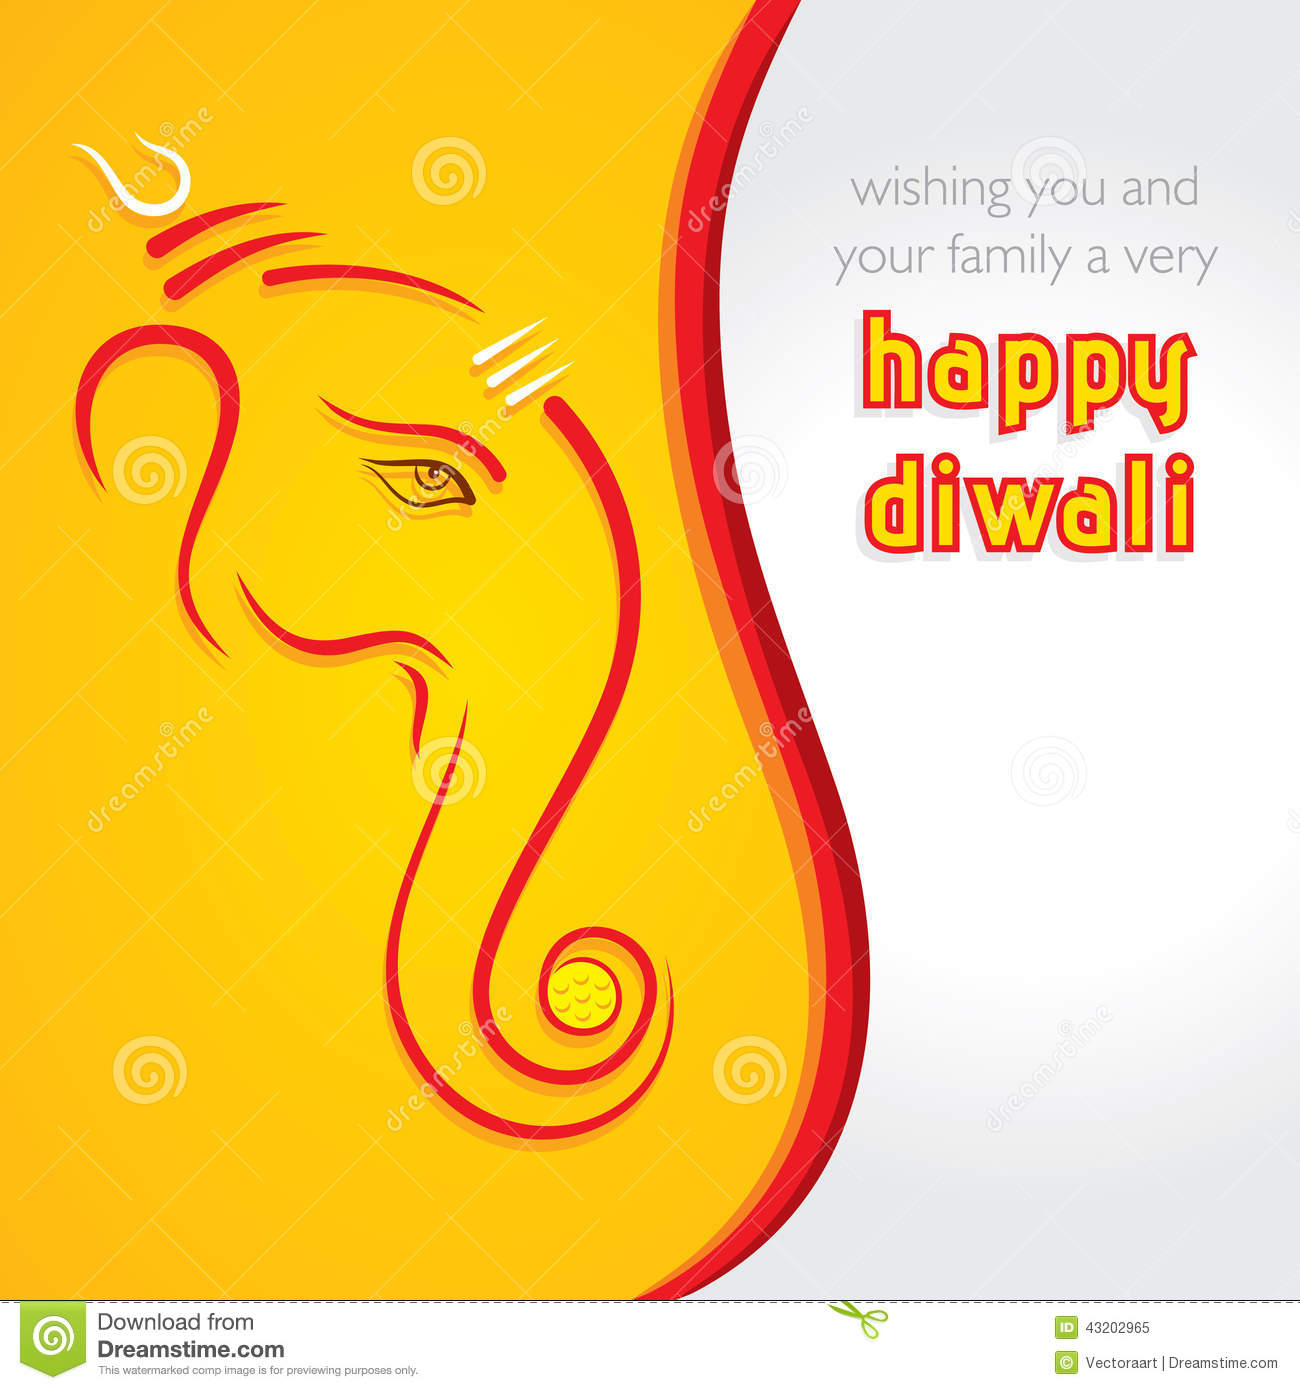 Happy ganesh chaturthi sketch greeting card design stock vector download happy ganesh chaturthi sketch greeting card design stock vector illustration of faith lord m4hsunfo